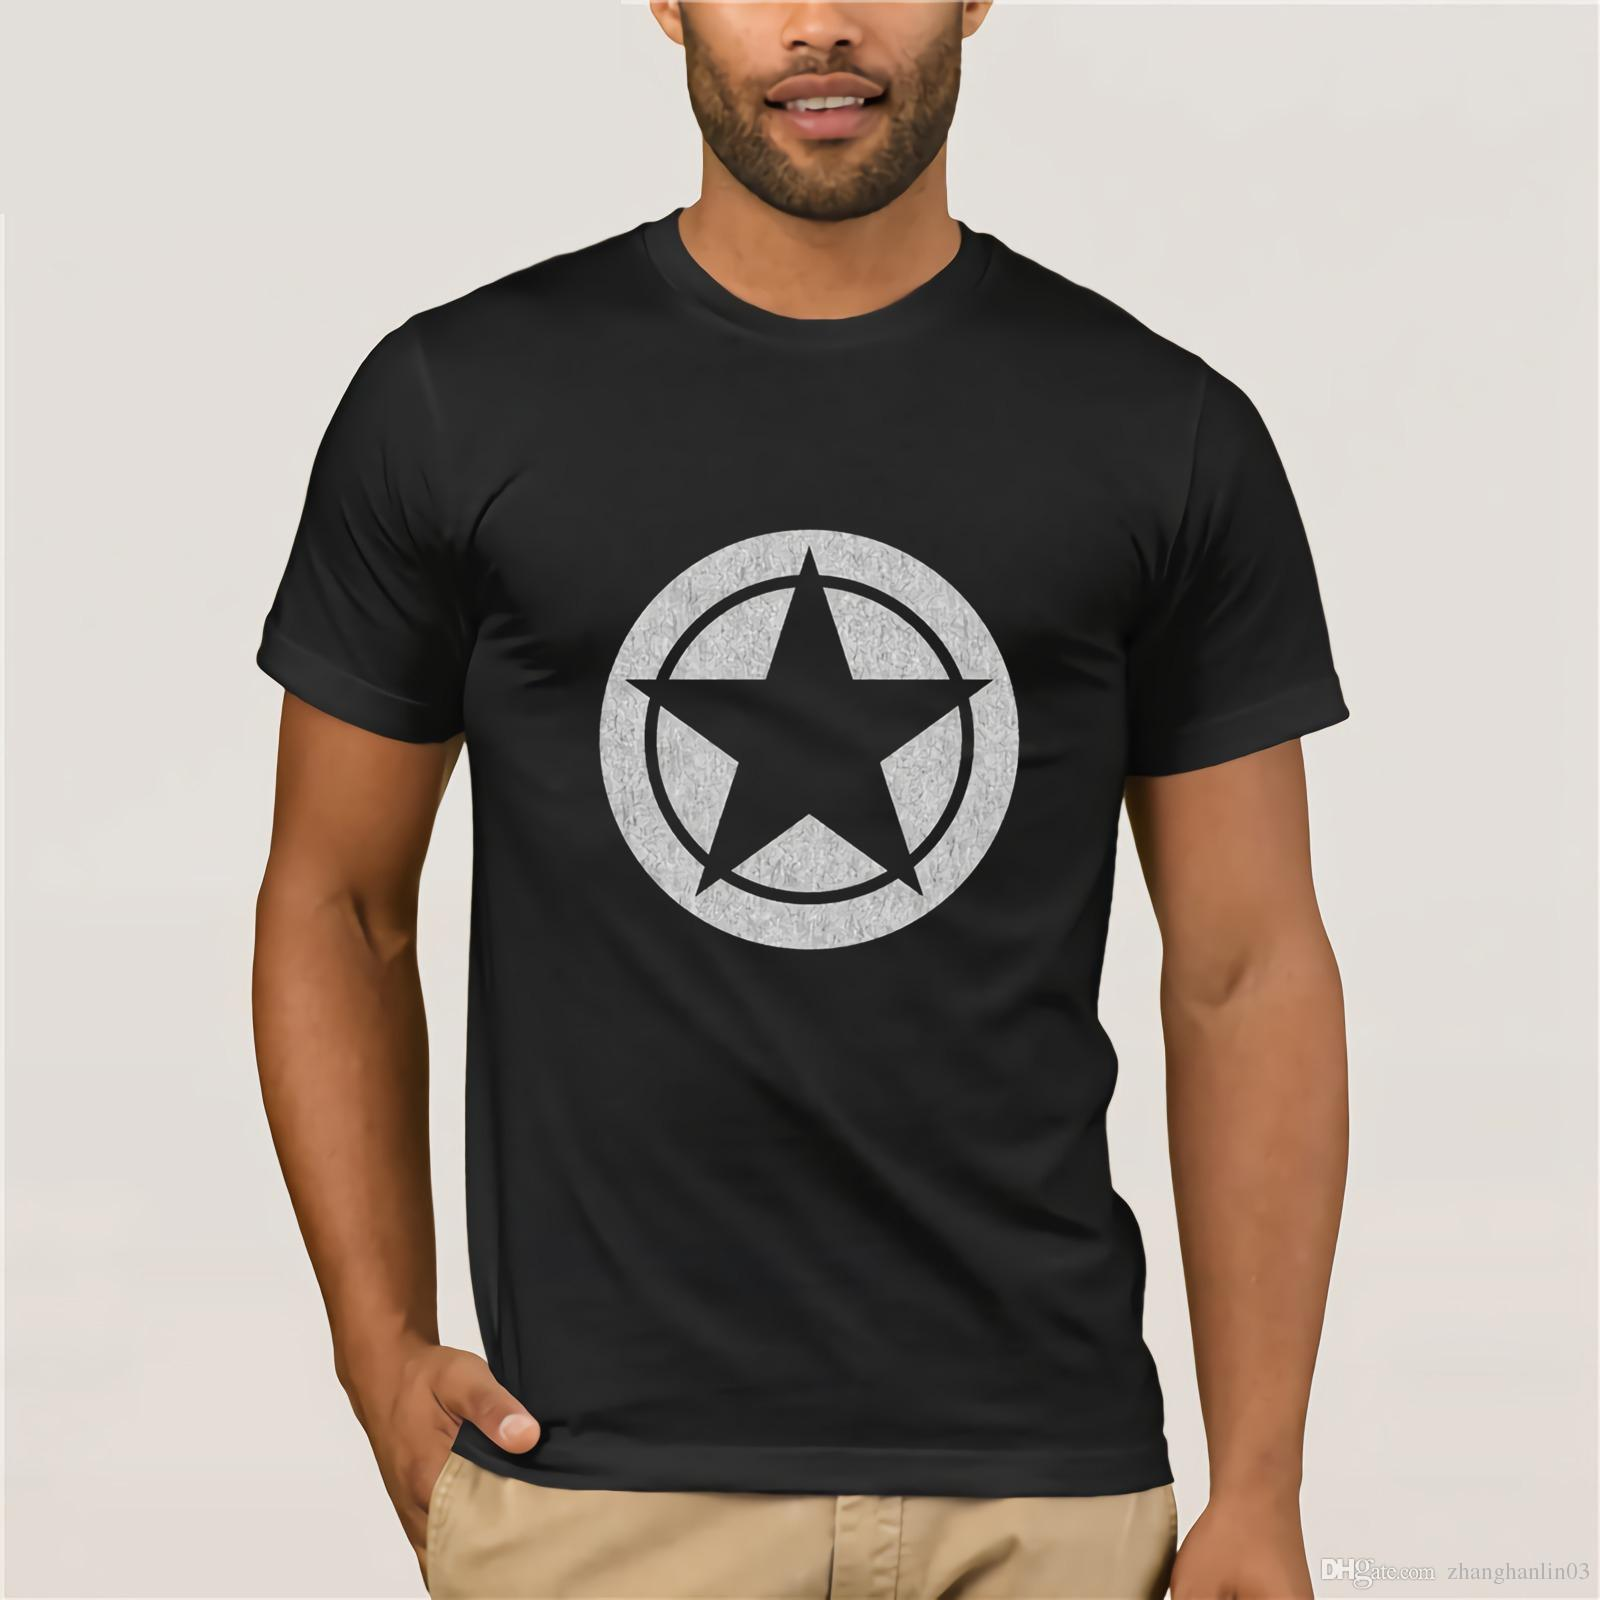 cee64dbc Black Star T Shirts Men Distressed PC Game Tops T Shirt For Men Cool T  Shirts Summer Hot Sale Crewneck Tee Shirt Short Sleeve Graphic T Shirt  Design Own T ...